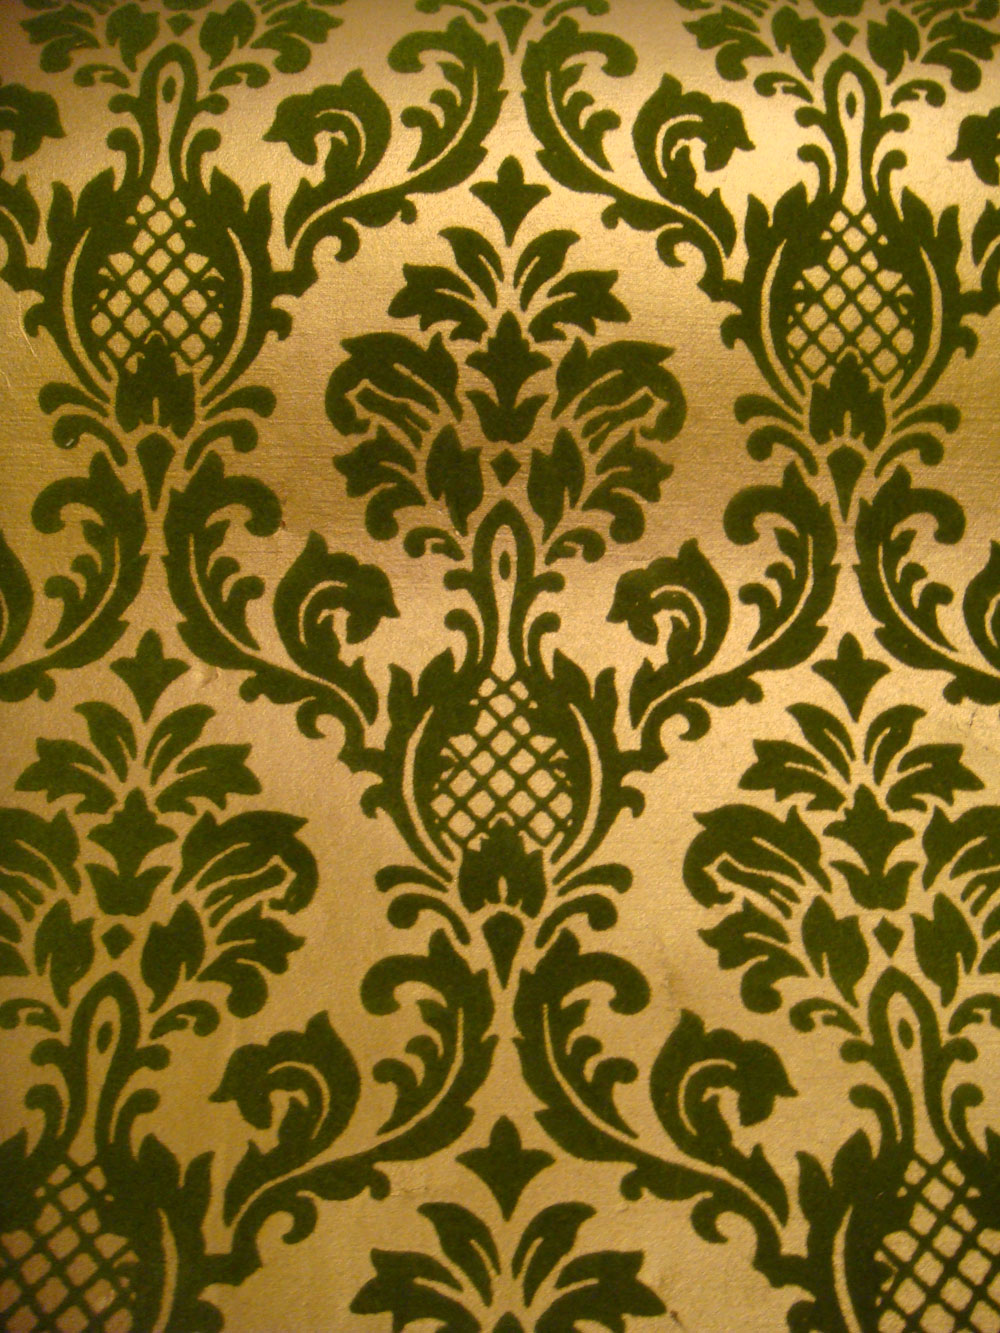 three pillars designburgundy and gold brocade wallpaperCHI HV6055 1000x1333